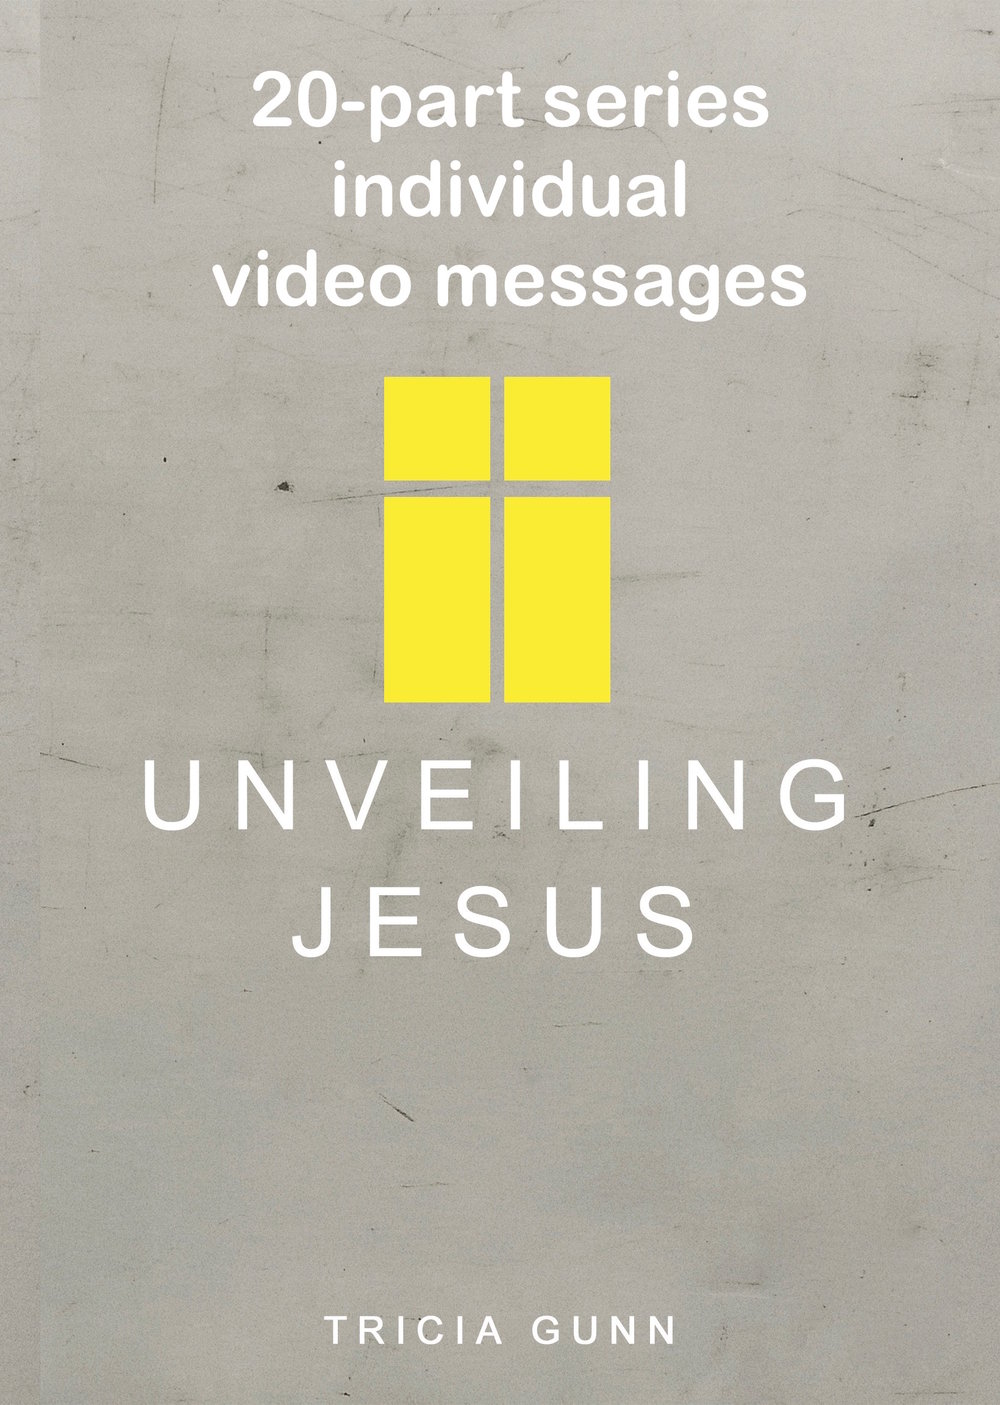 Unveiling-Jesus_1-10_download copy.jpg